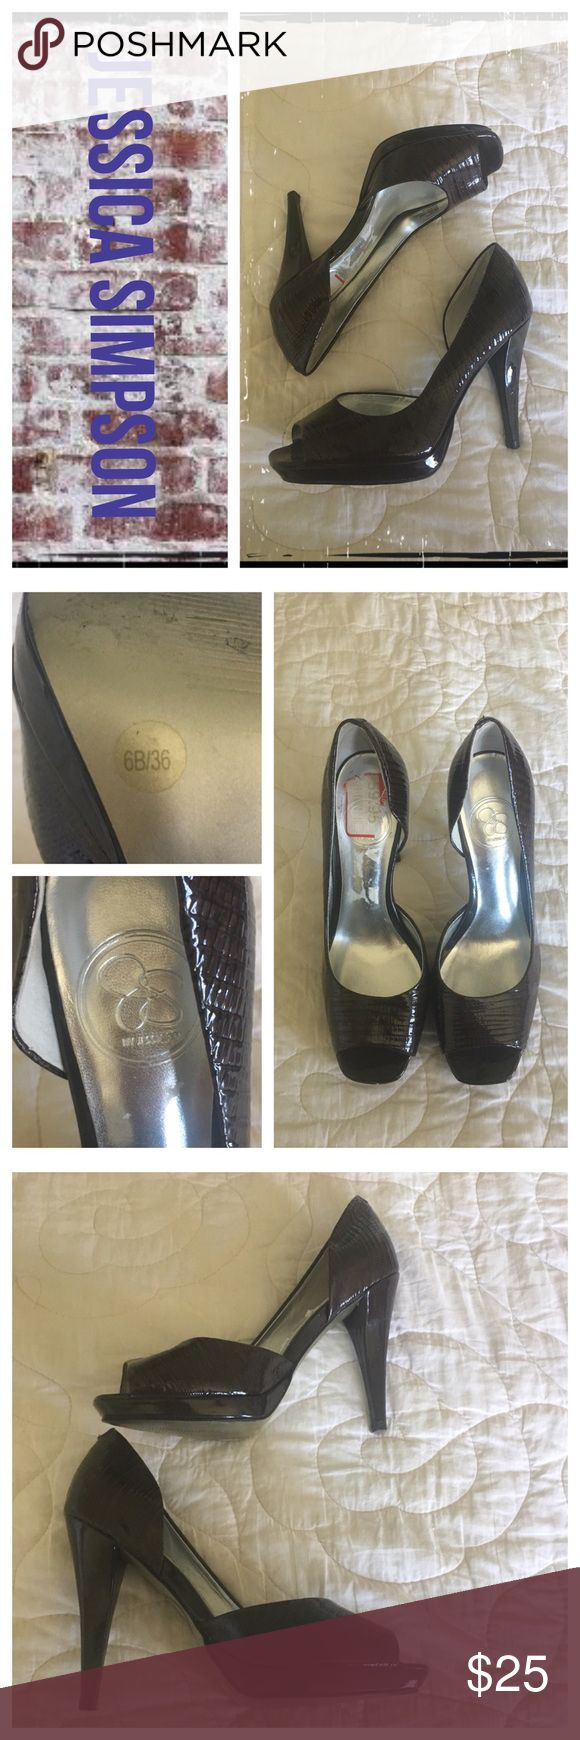 Jessica Simpson brown faux alligator OT heels Gently worn; normal wear on soles. EUC.                     ❇️ Reasonable Offers Only Please ❇️ Smoke and pet free ❇️ If this is a bundle, I WILL NOT break it up and sell    separately ❇️ I do not model anything; I will provide measurements if needed.  ❇️ Please do not hesitate to ask questions, 👍.         ❇️ NO HOLDS, NO TRADES, POSH RULES ONLY! Jessica Simpson Shoes Heels